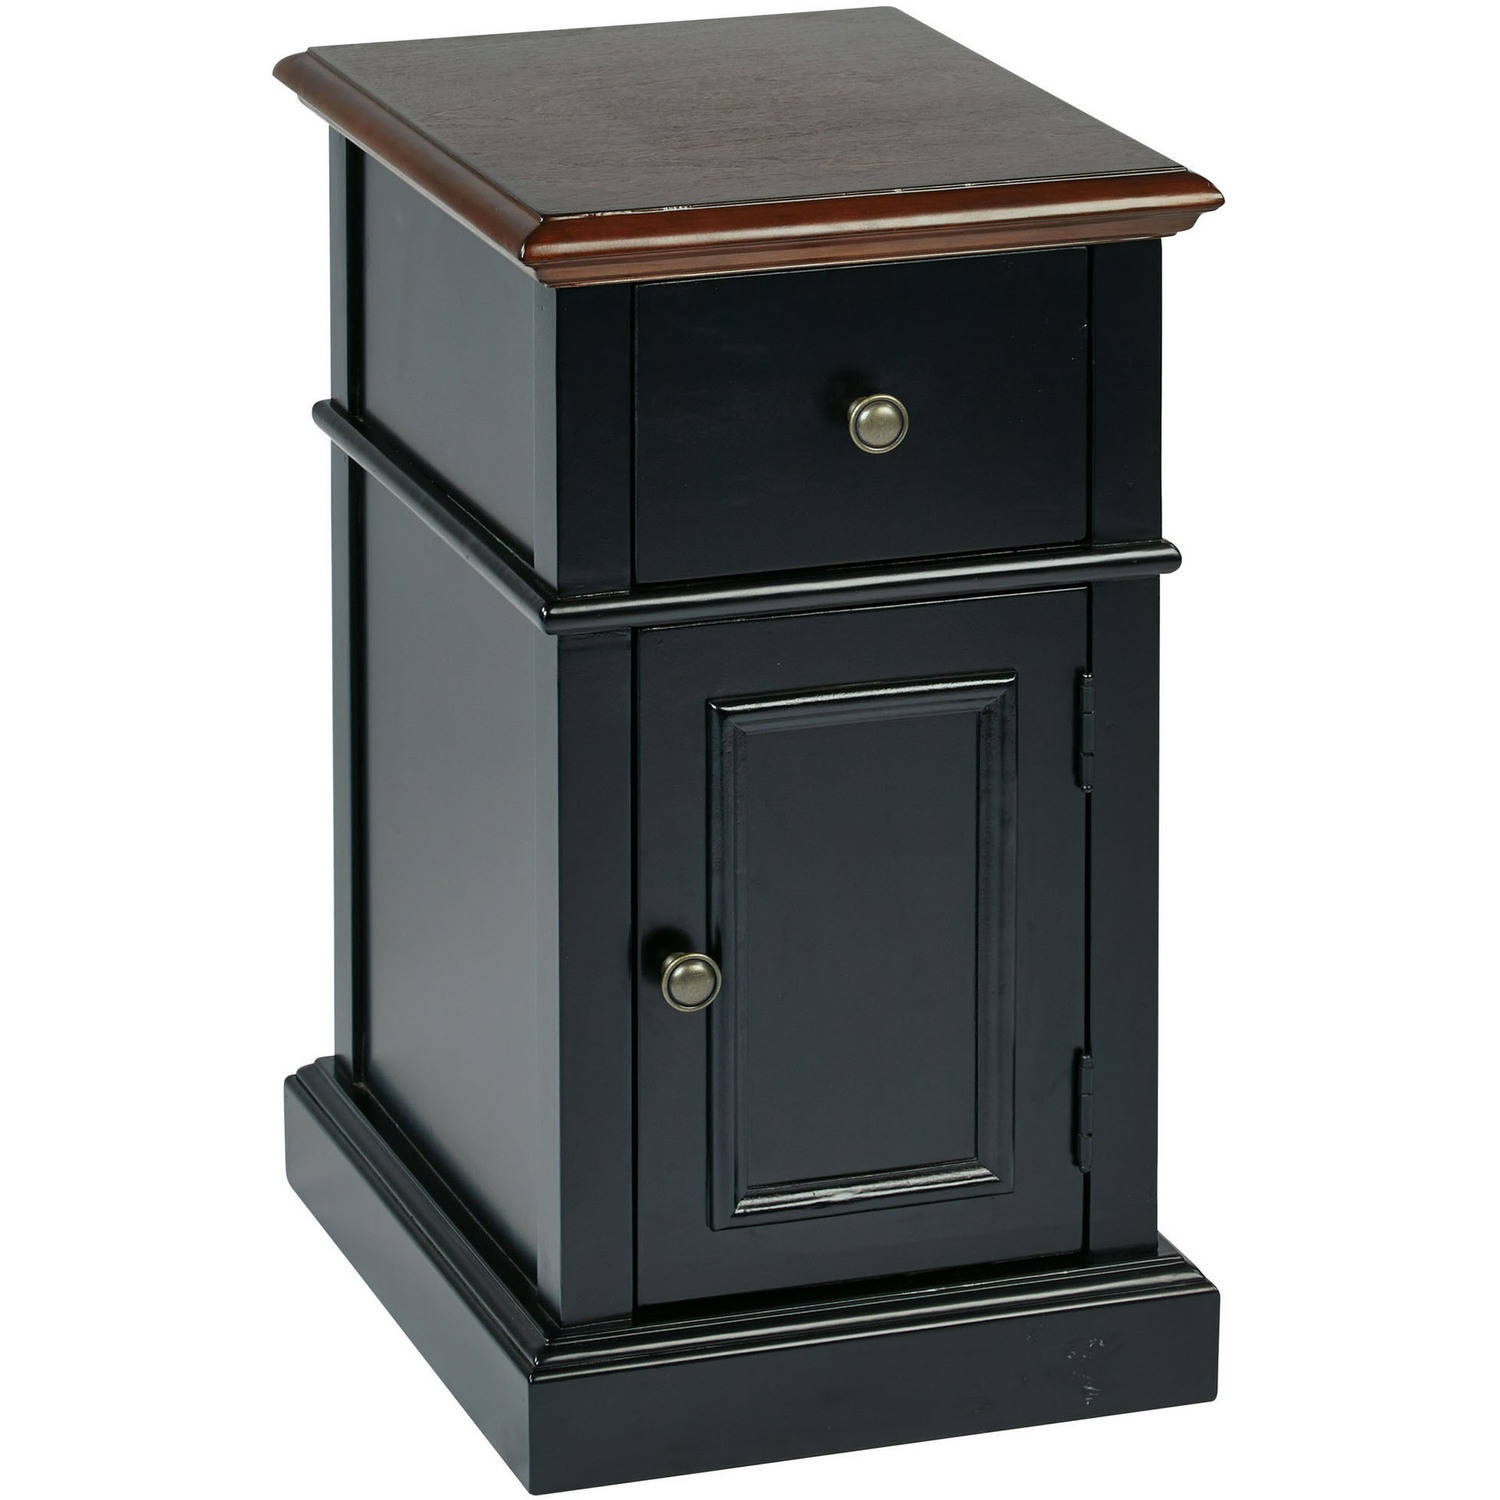 OSP Designs Oxford Chair Side Table, Black 2-Tone